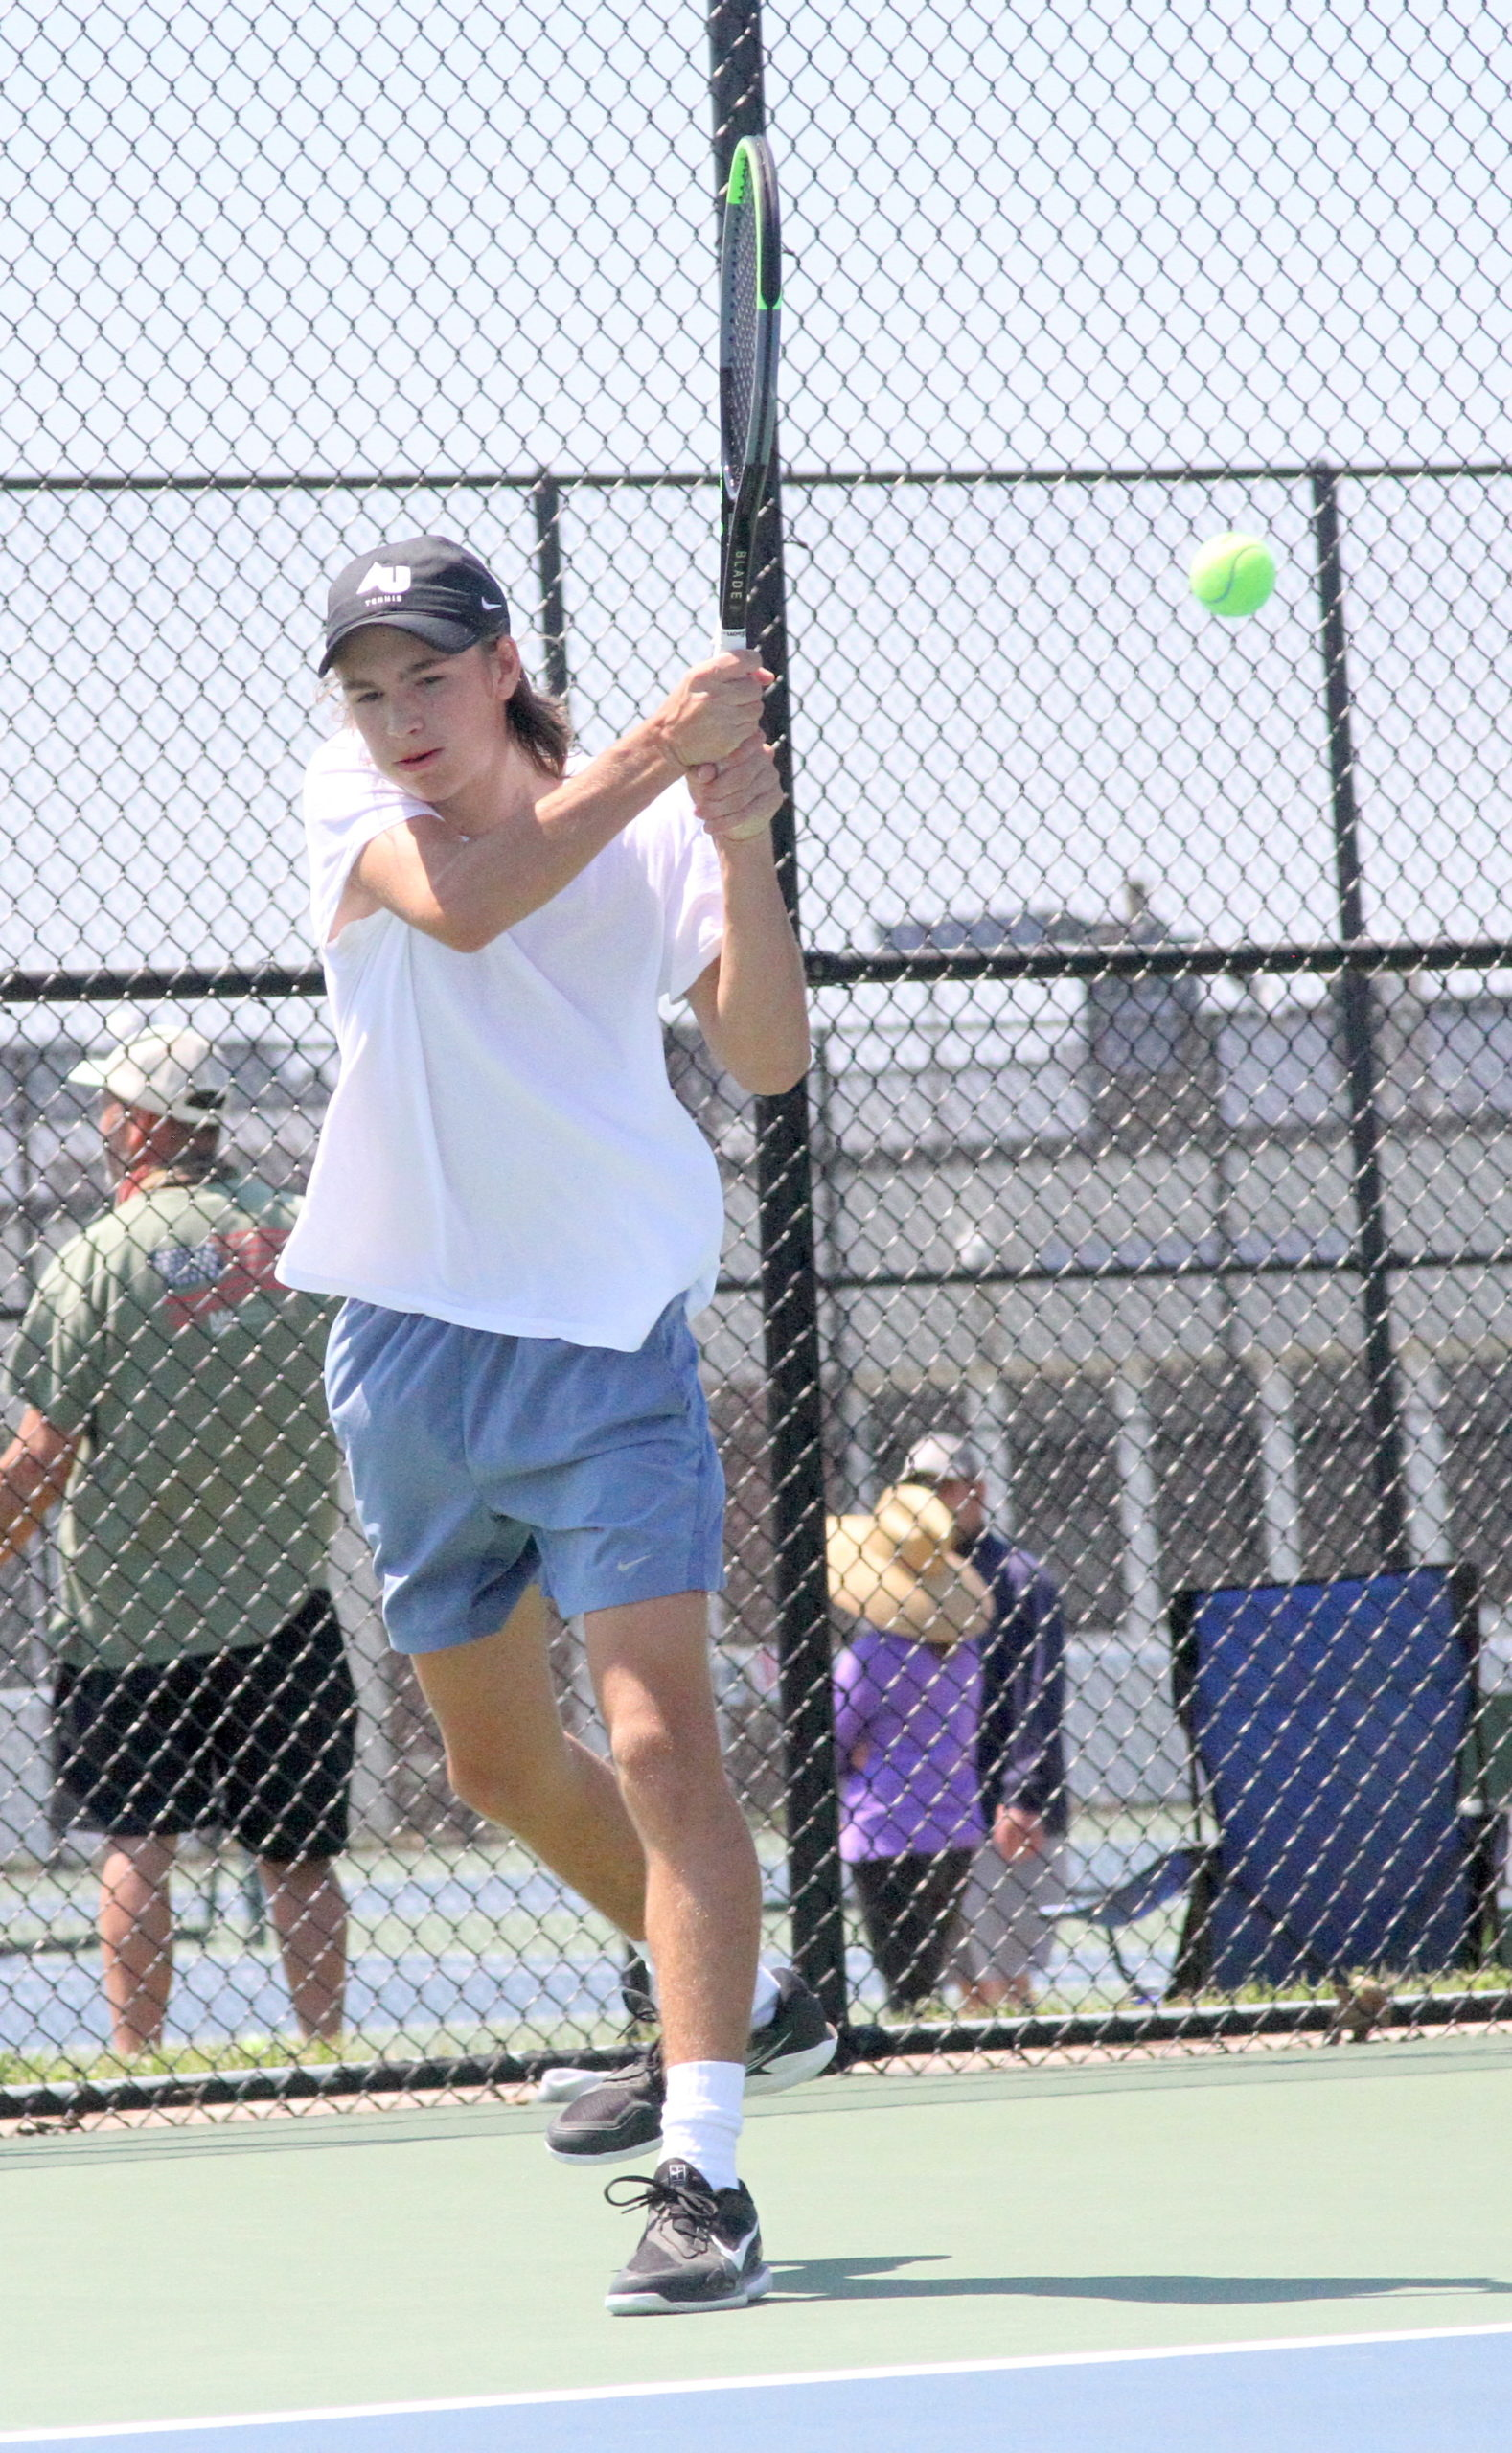 East Hampton sophomore Max Astilean sends the ball back over the net in his Division IV quarterfinals match. DESIRÉE KEEGAN